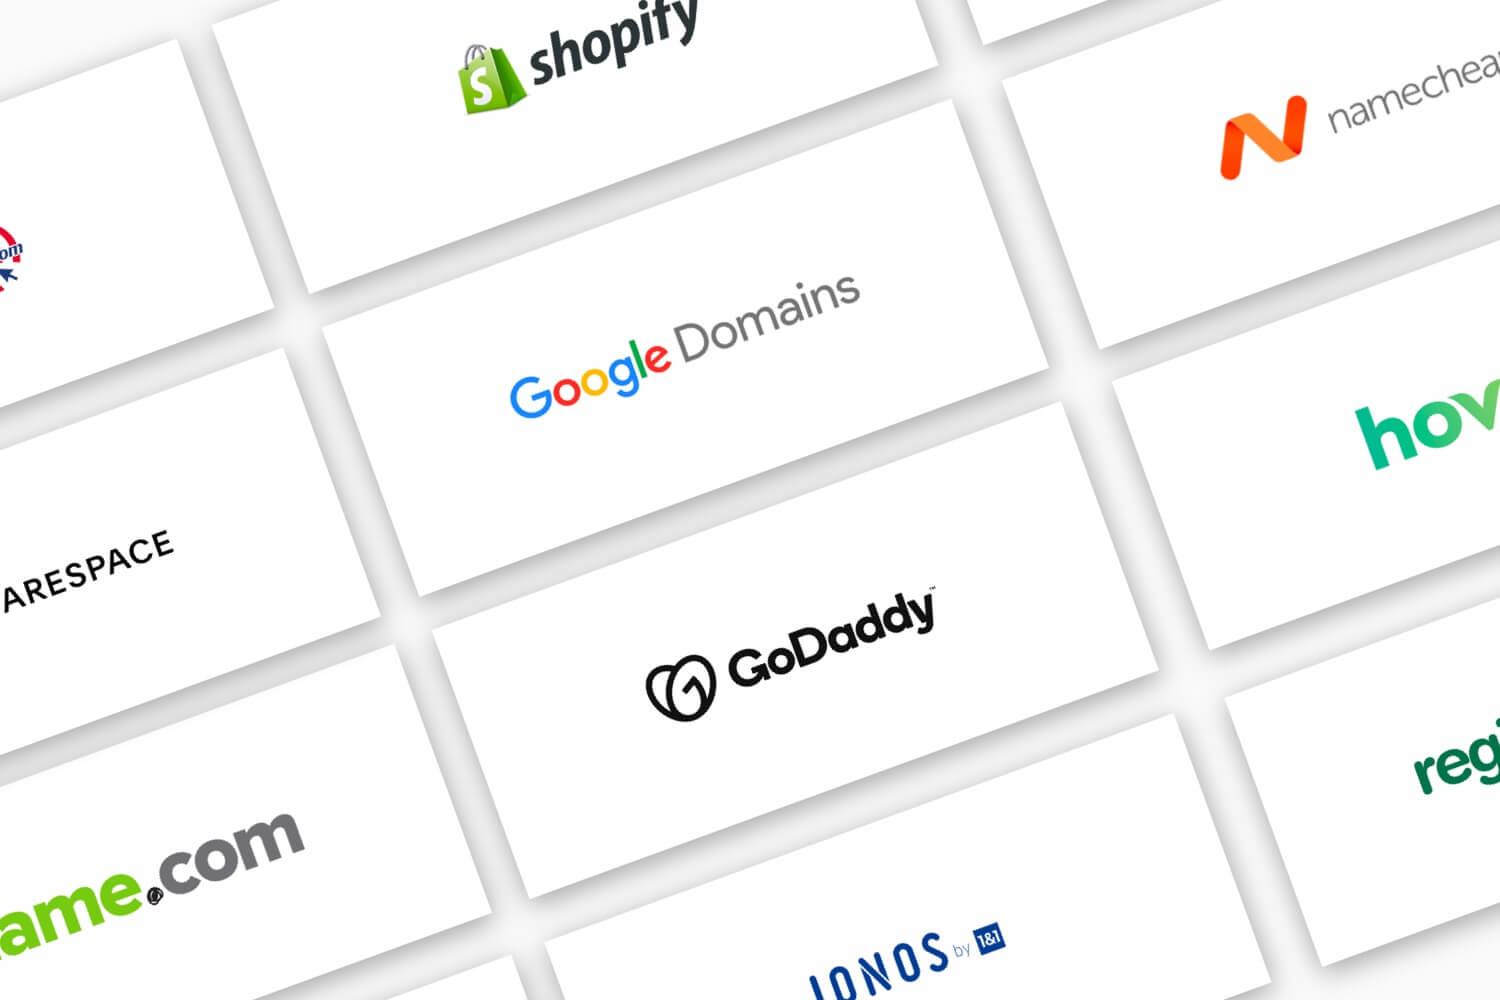 Logos for several domain registrars.